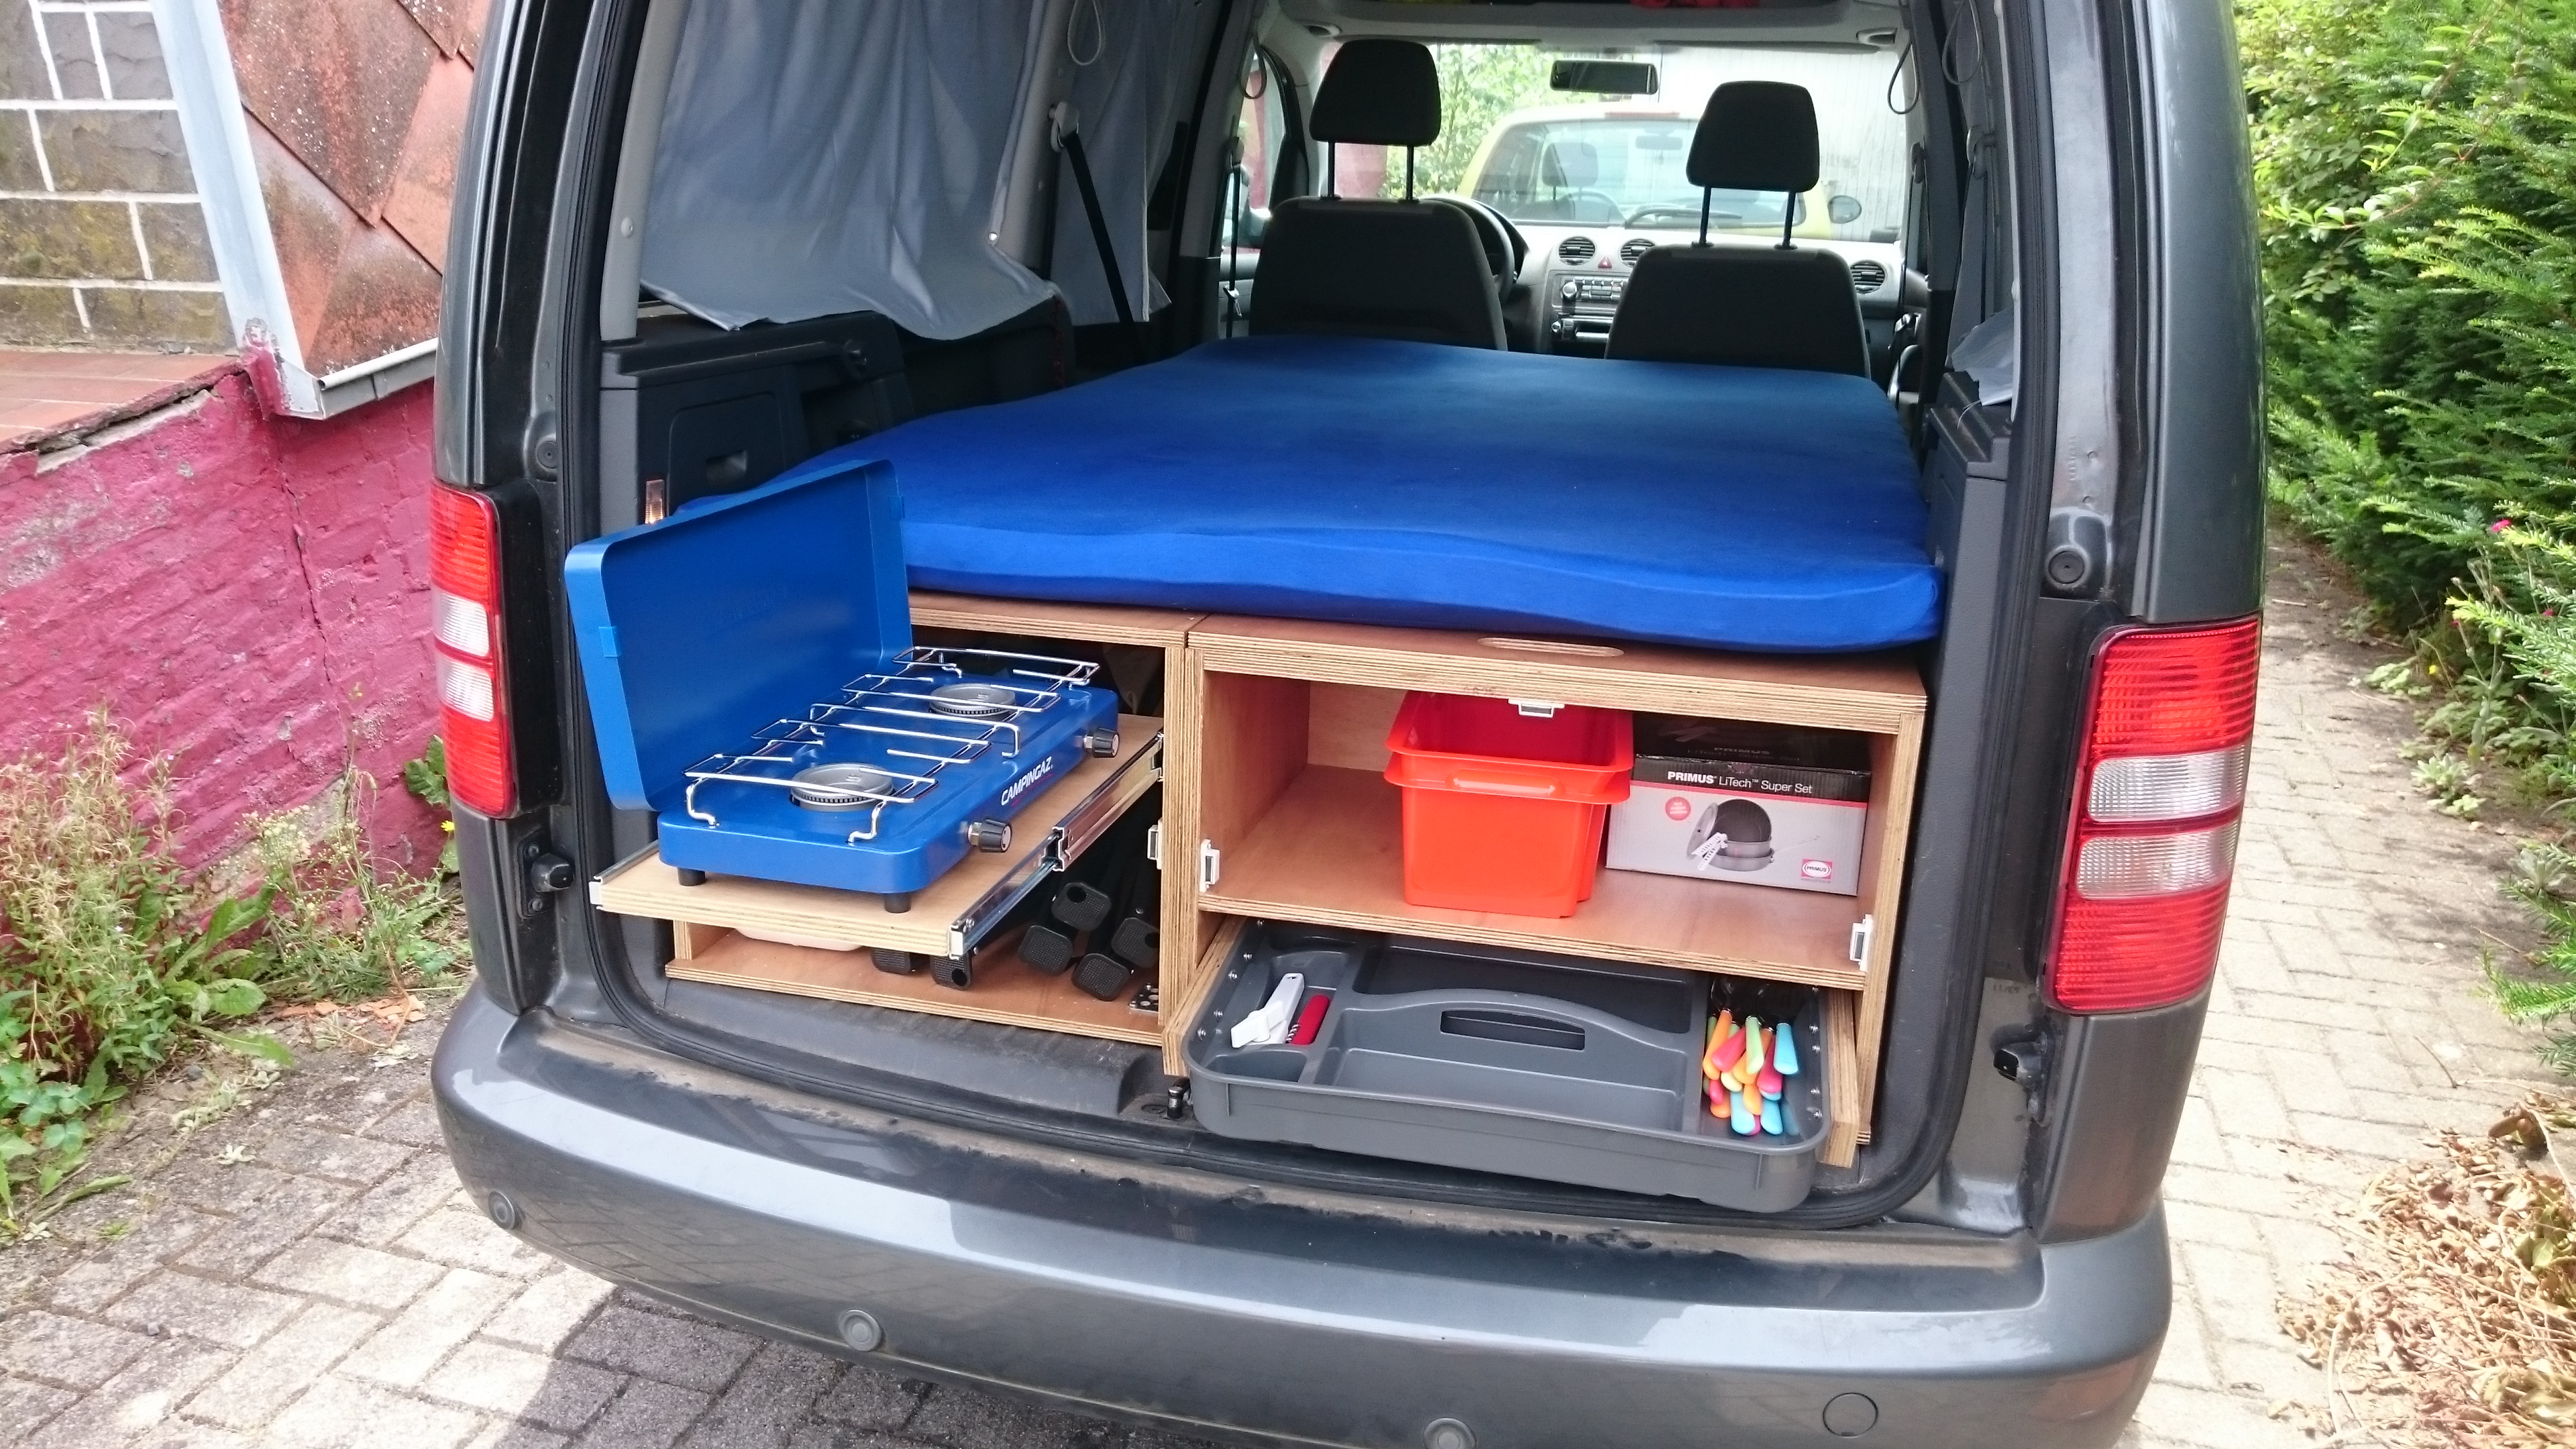 Diy Vw Caddy Maxi Camper 8 Steps With Pictures Instructables